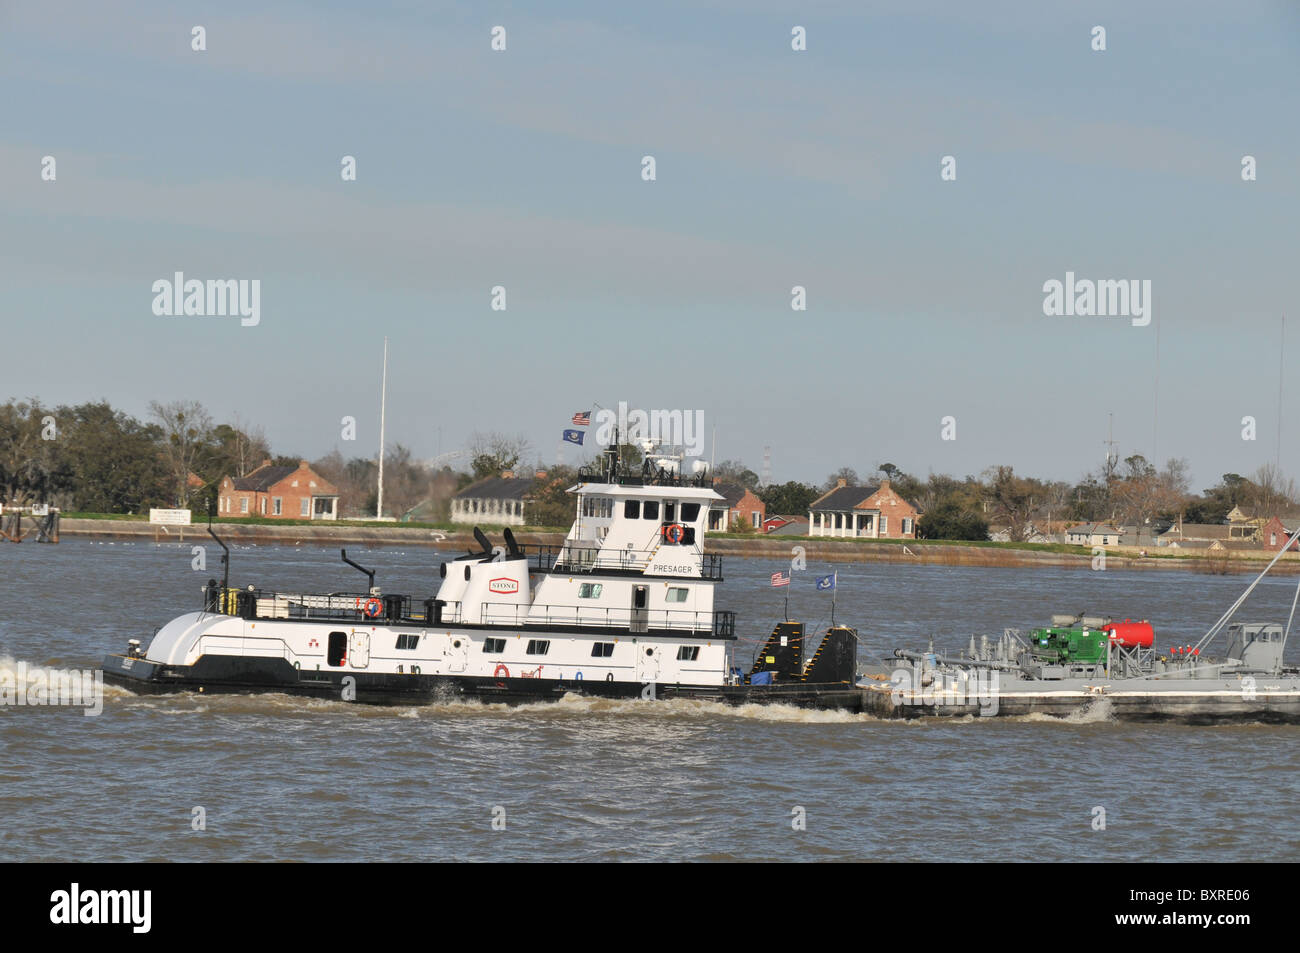 tug pushing barge mississippi river new orleans louisiana stock photo 33707302 alamy. Black Bedroom Furniture Sets. Home Design Ideas